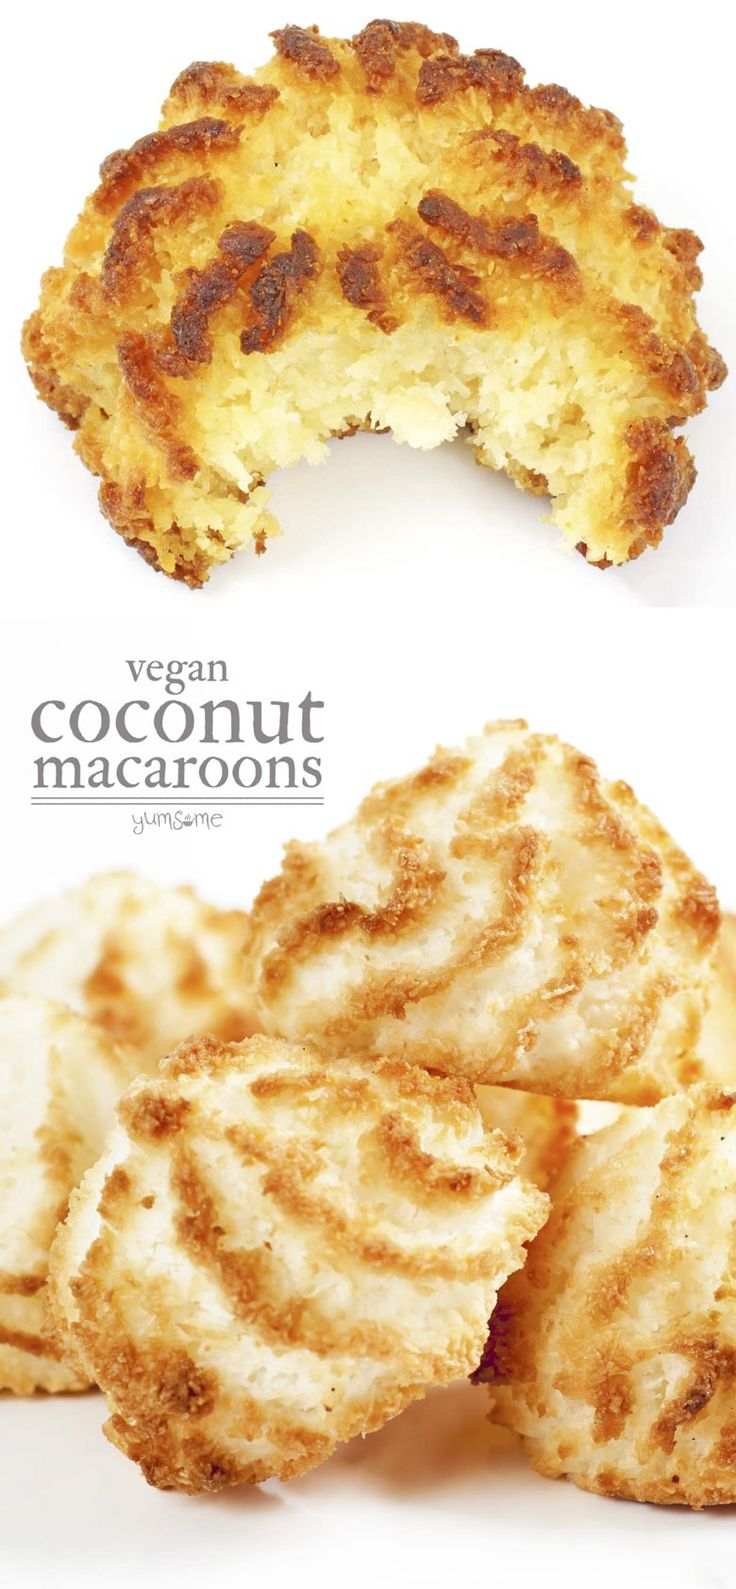 Vegan coconut macaroons - sweet and moist, chewy on the inside, and crispy on the outside. Perfect! | yumsome.com via @yums0me